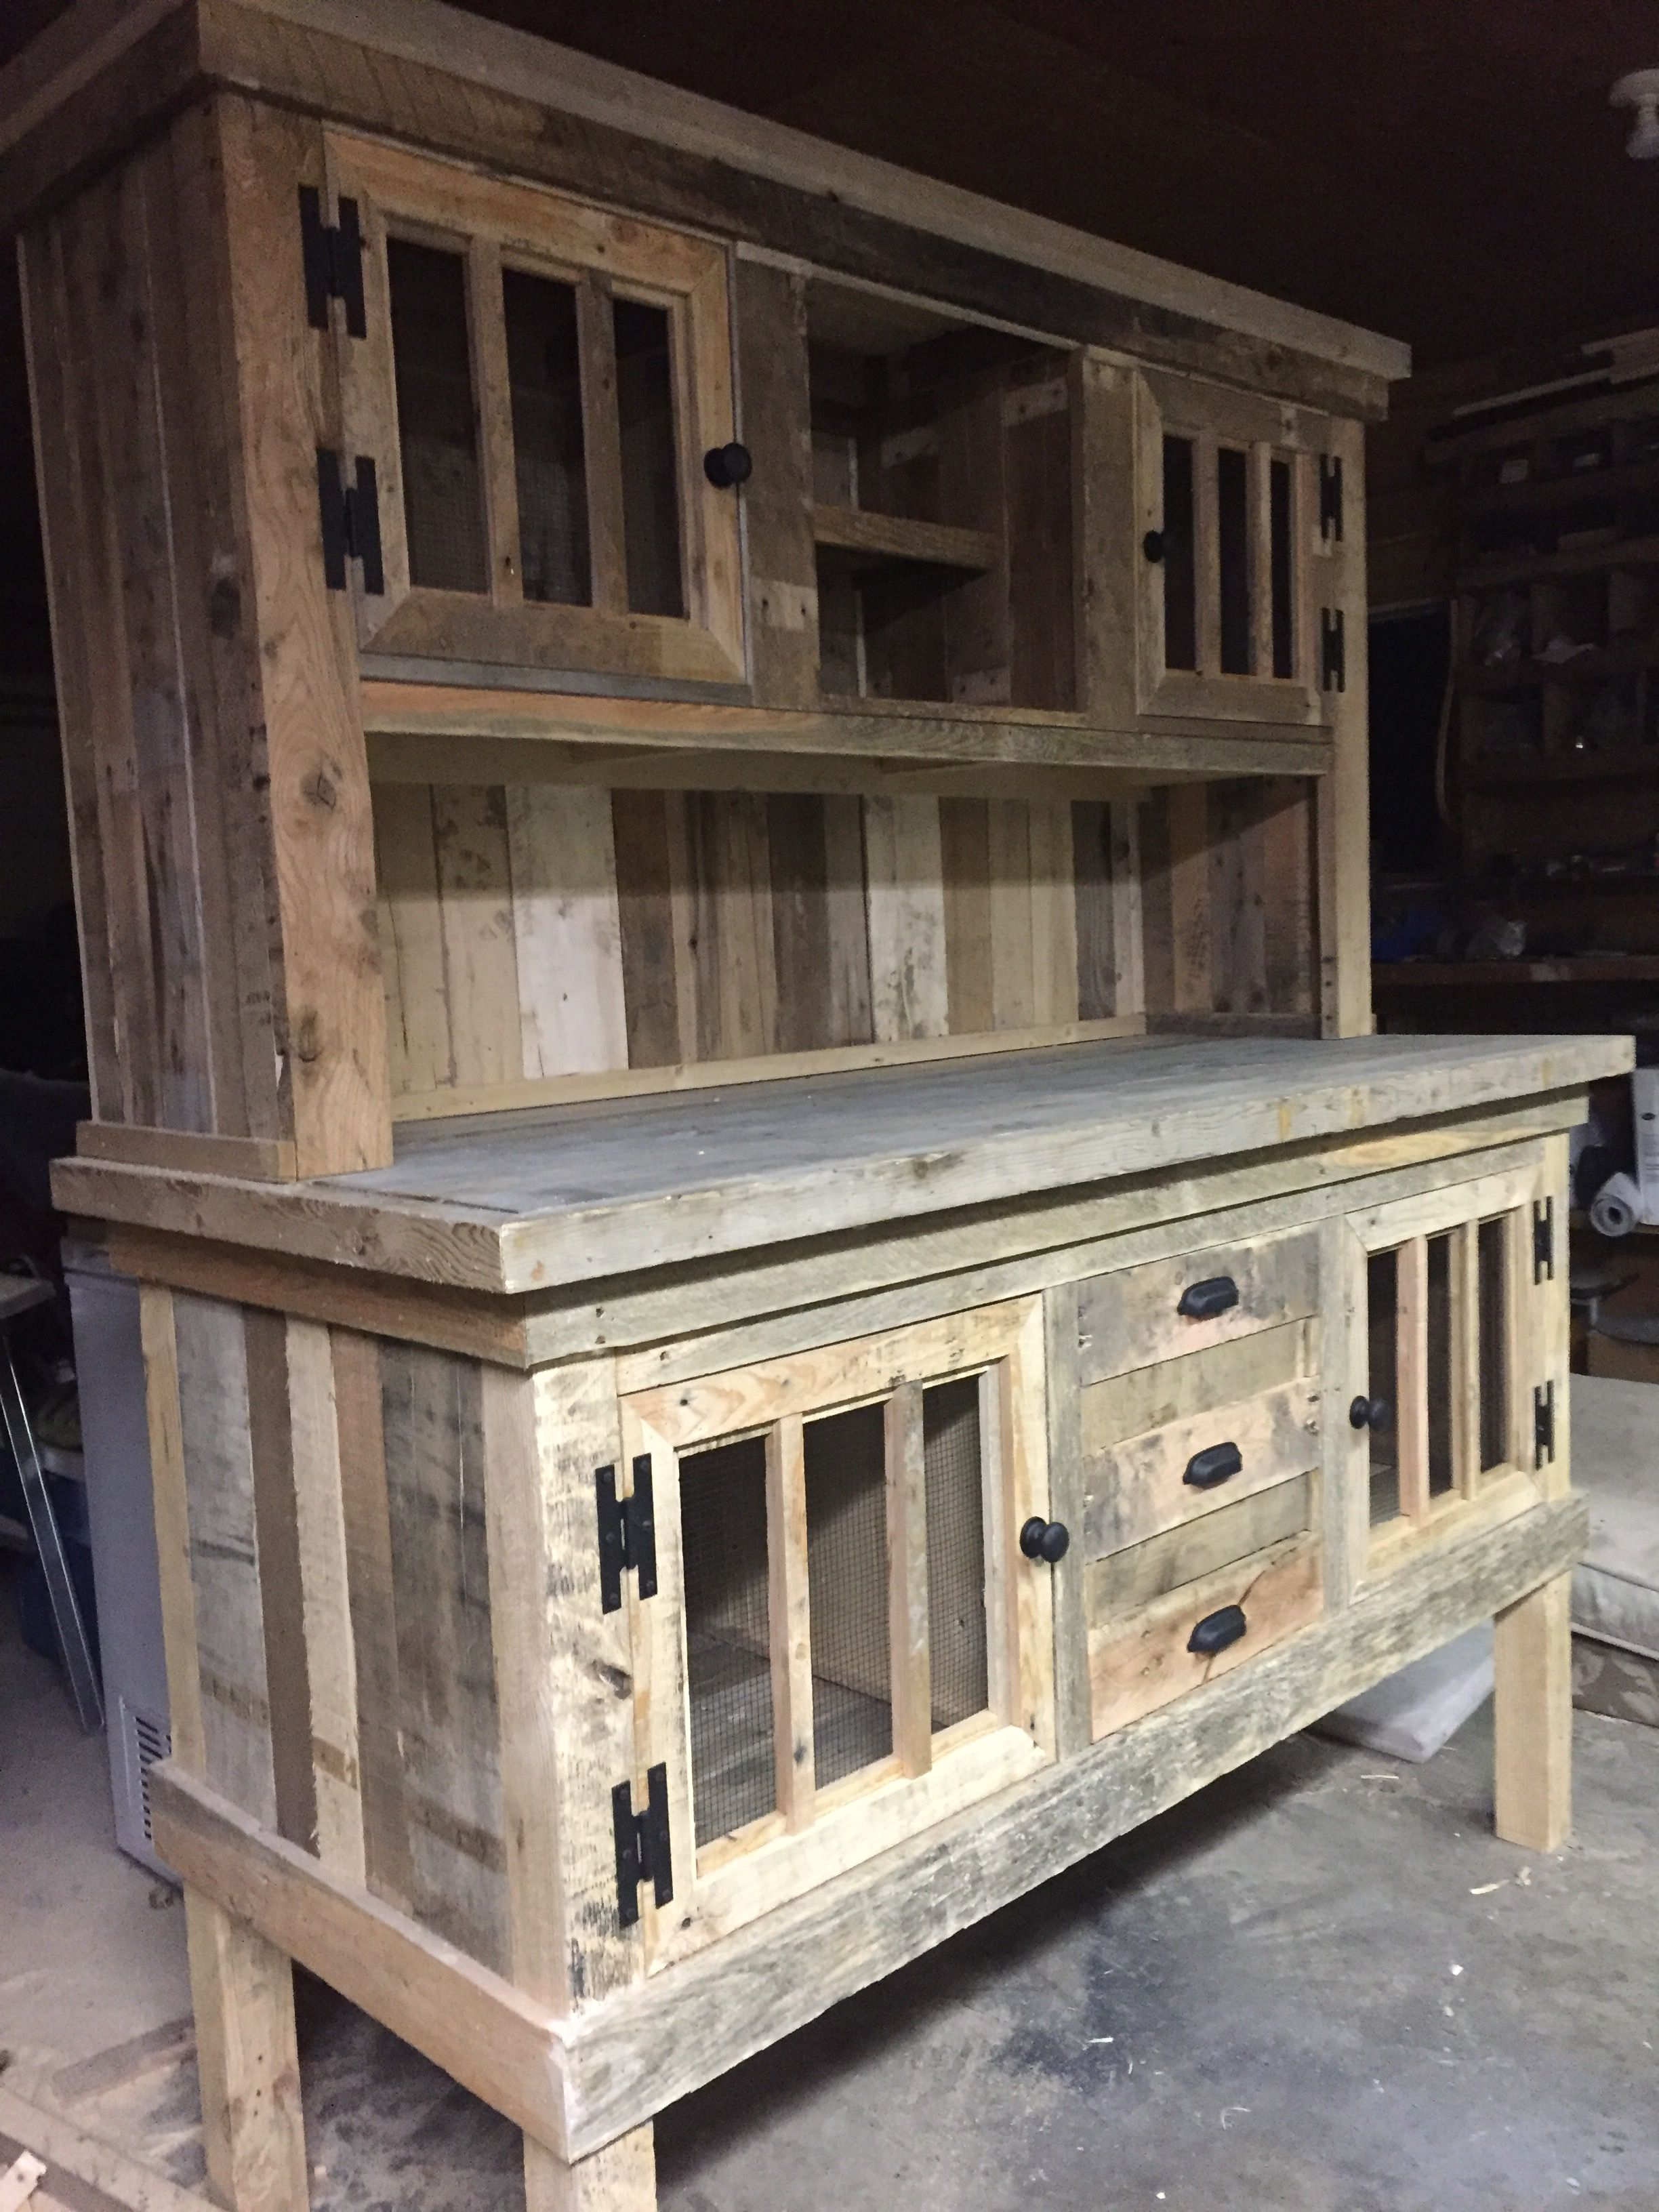 Pallet wood hutch cabins pinterest pallet wood for Hutch plans woodworking free